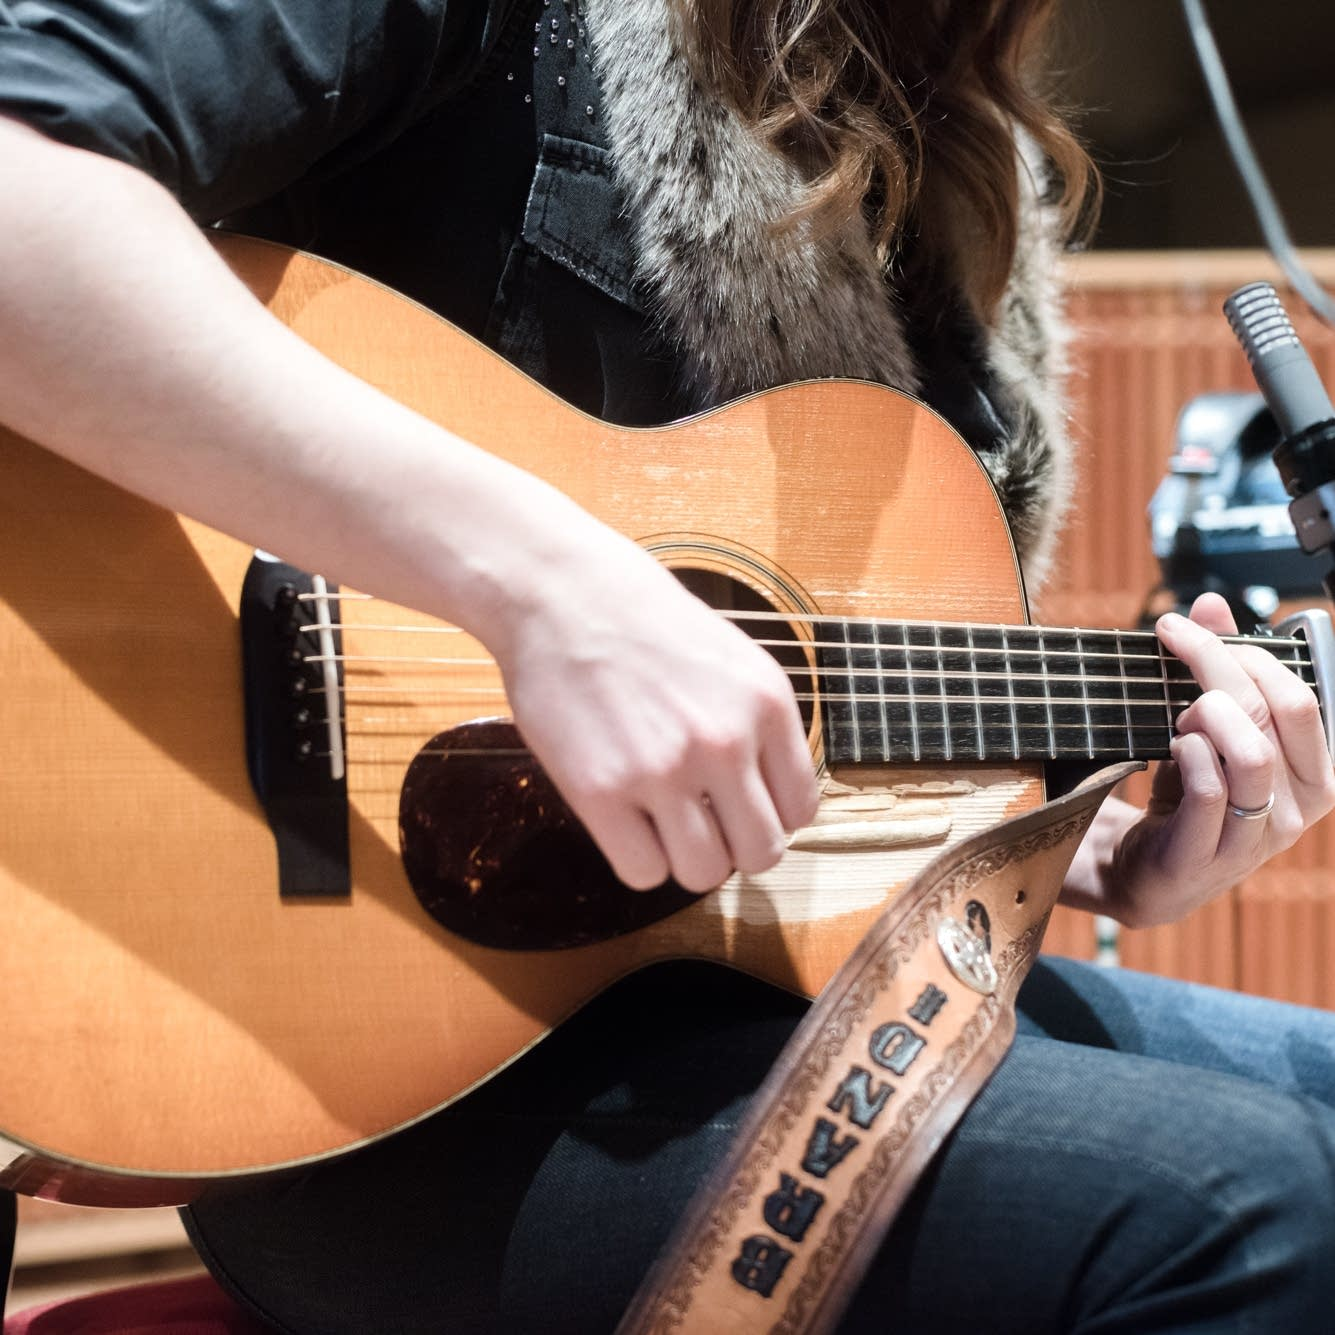 Brandi Carlile's Collings guitar